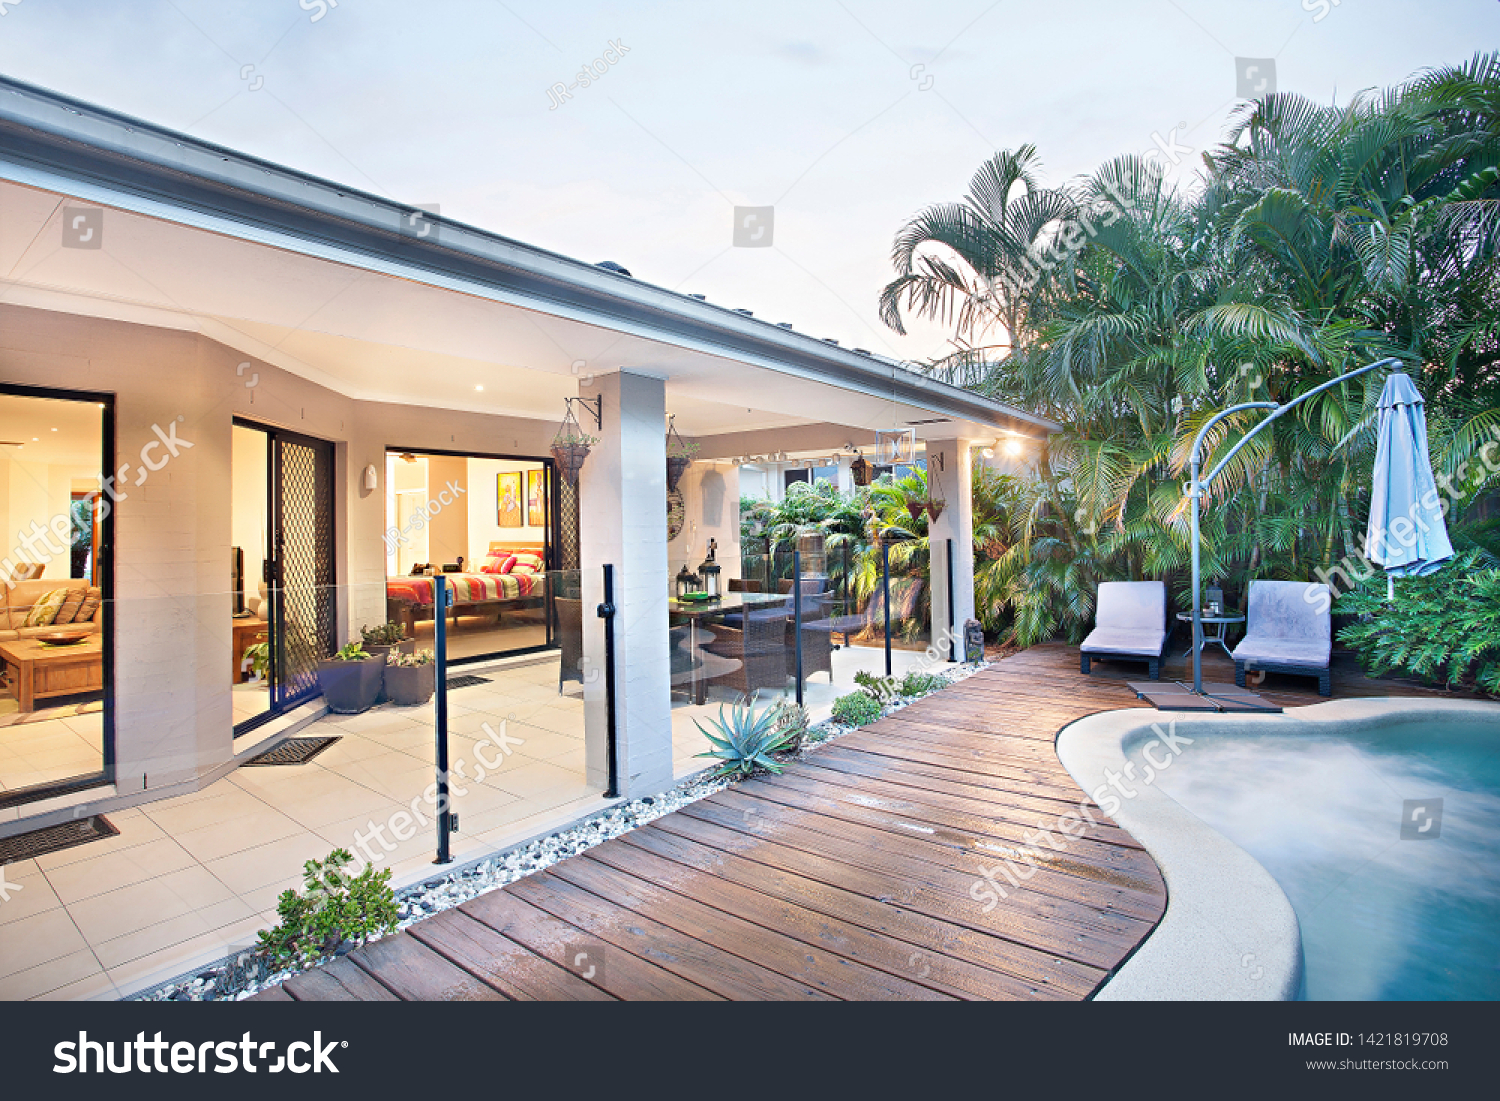 Garden With Swimming Pool house garden swimming pool plants natural stock photo (edit